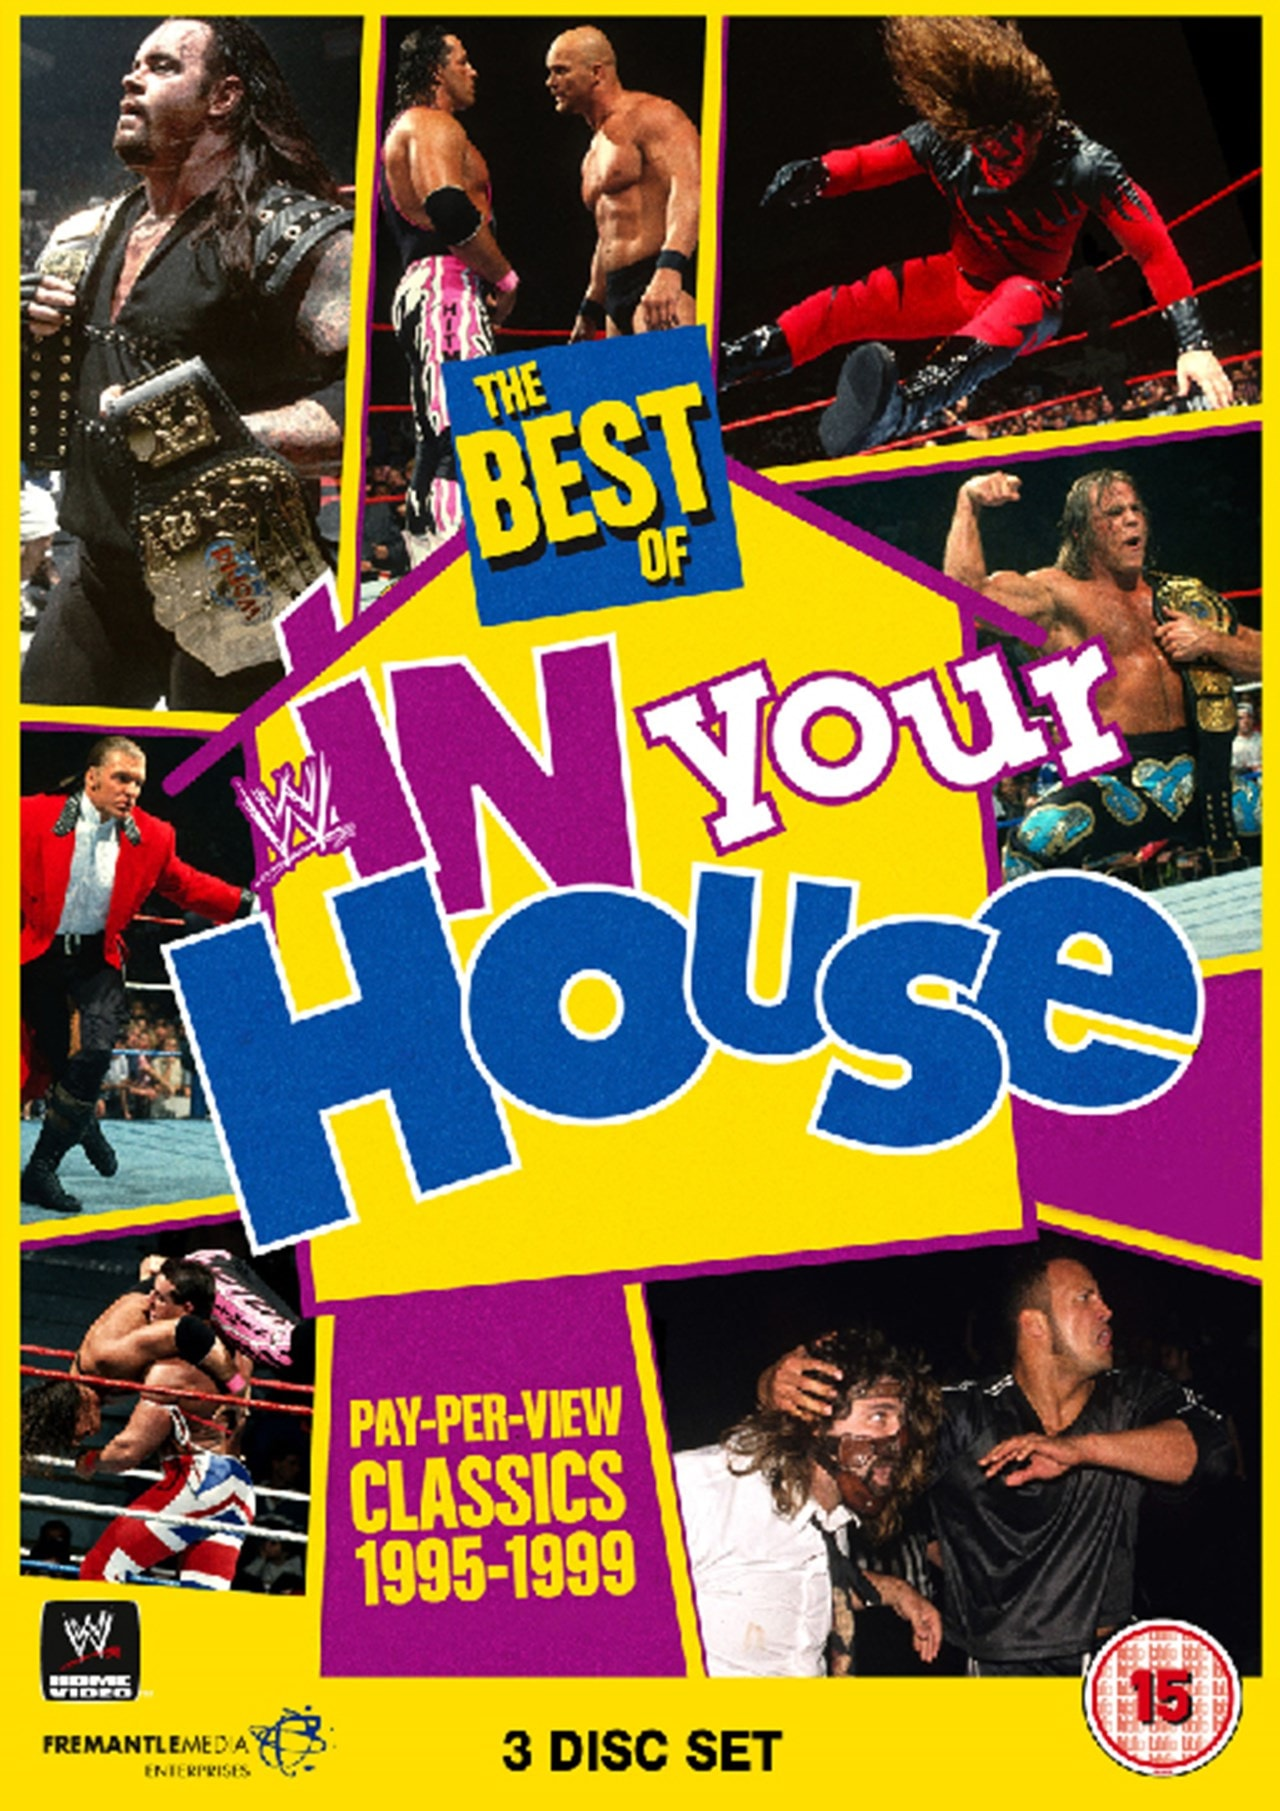 Wwe The Best Of In Your House Dvd Box Set Free Shipping Over 20 Hmv Store